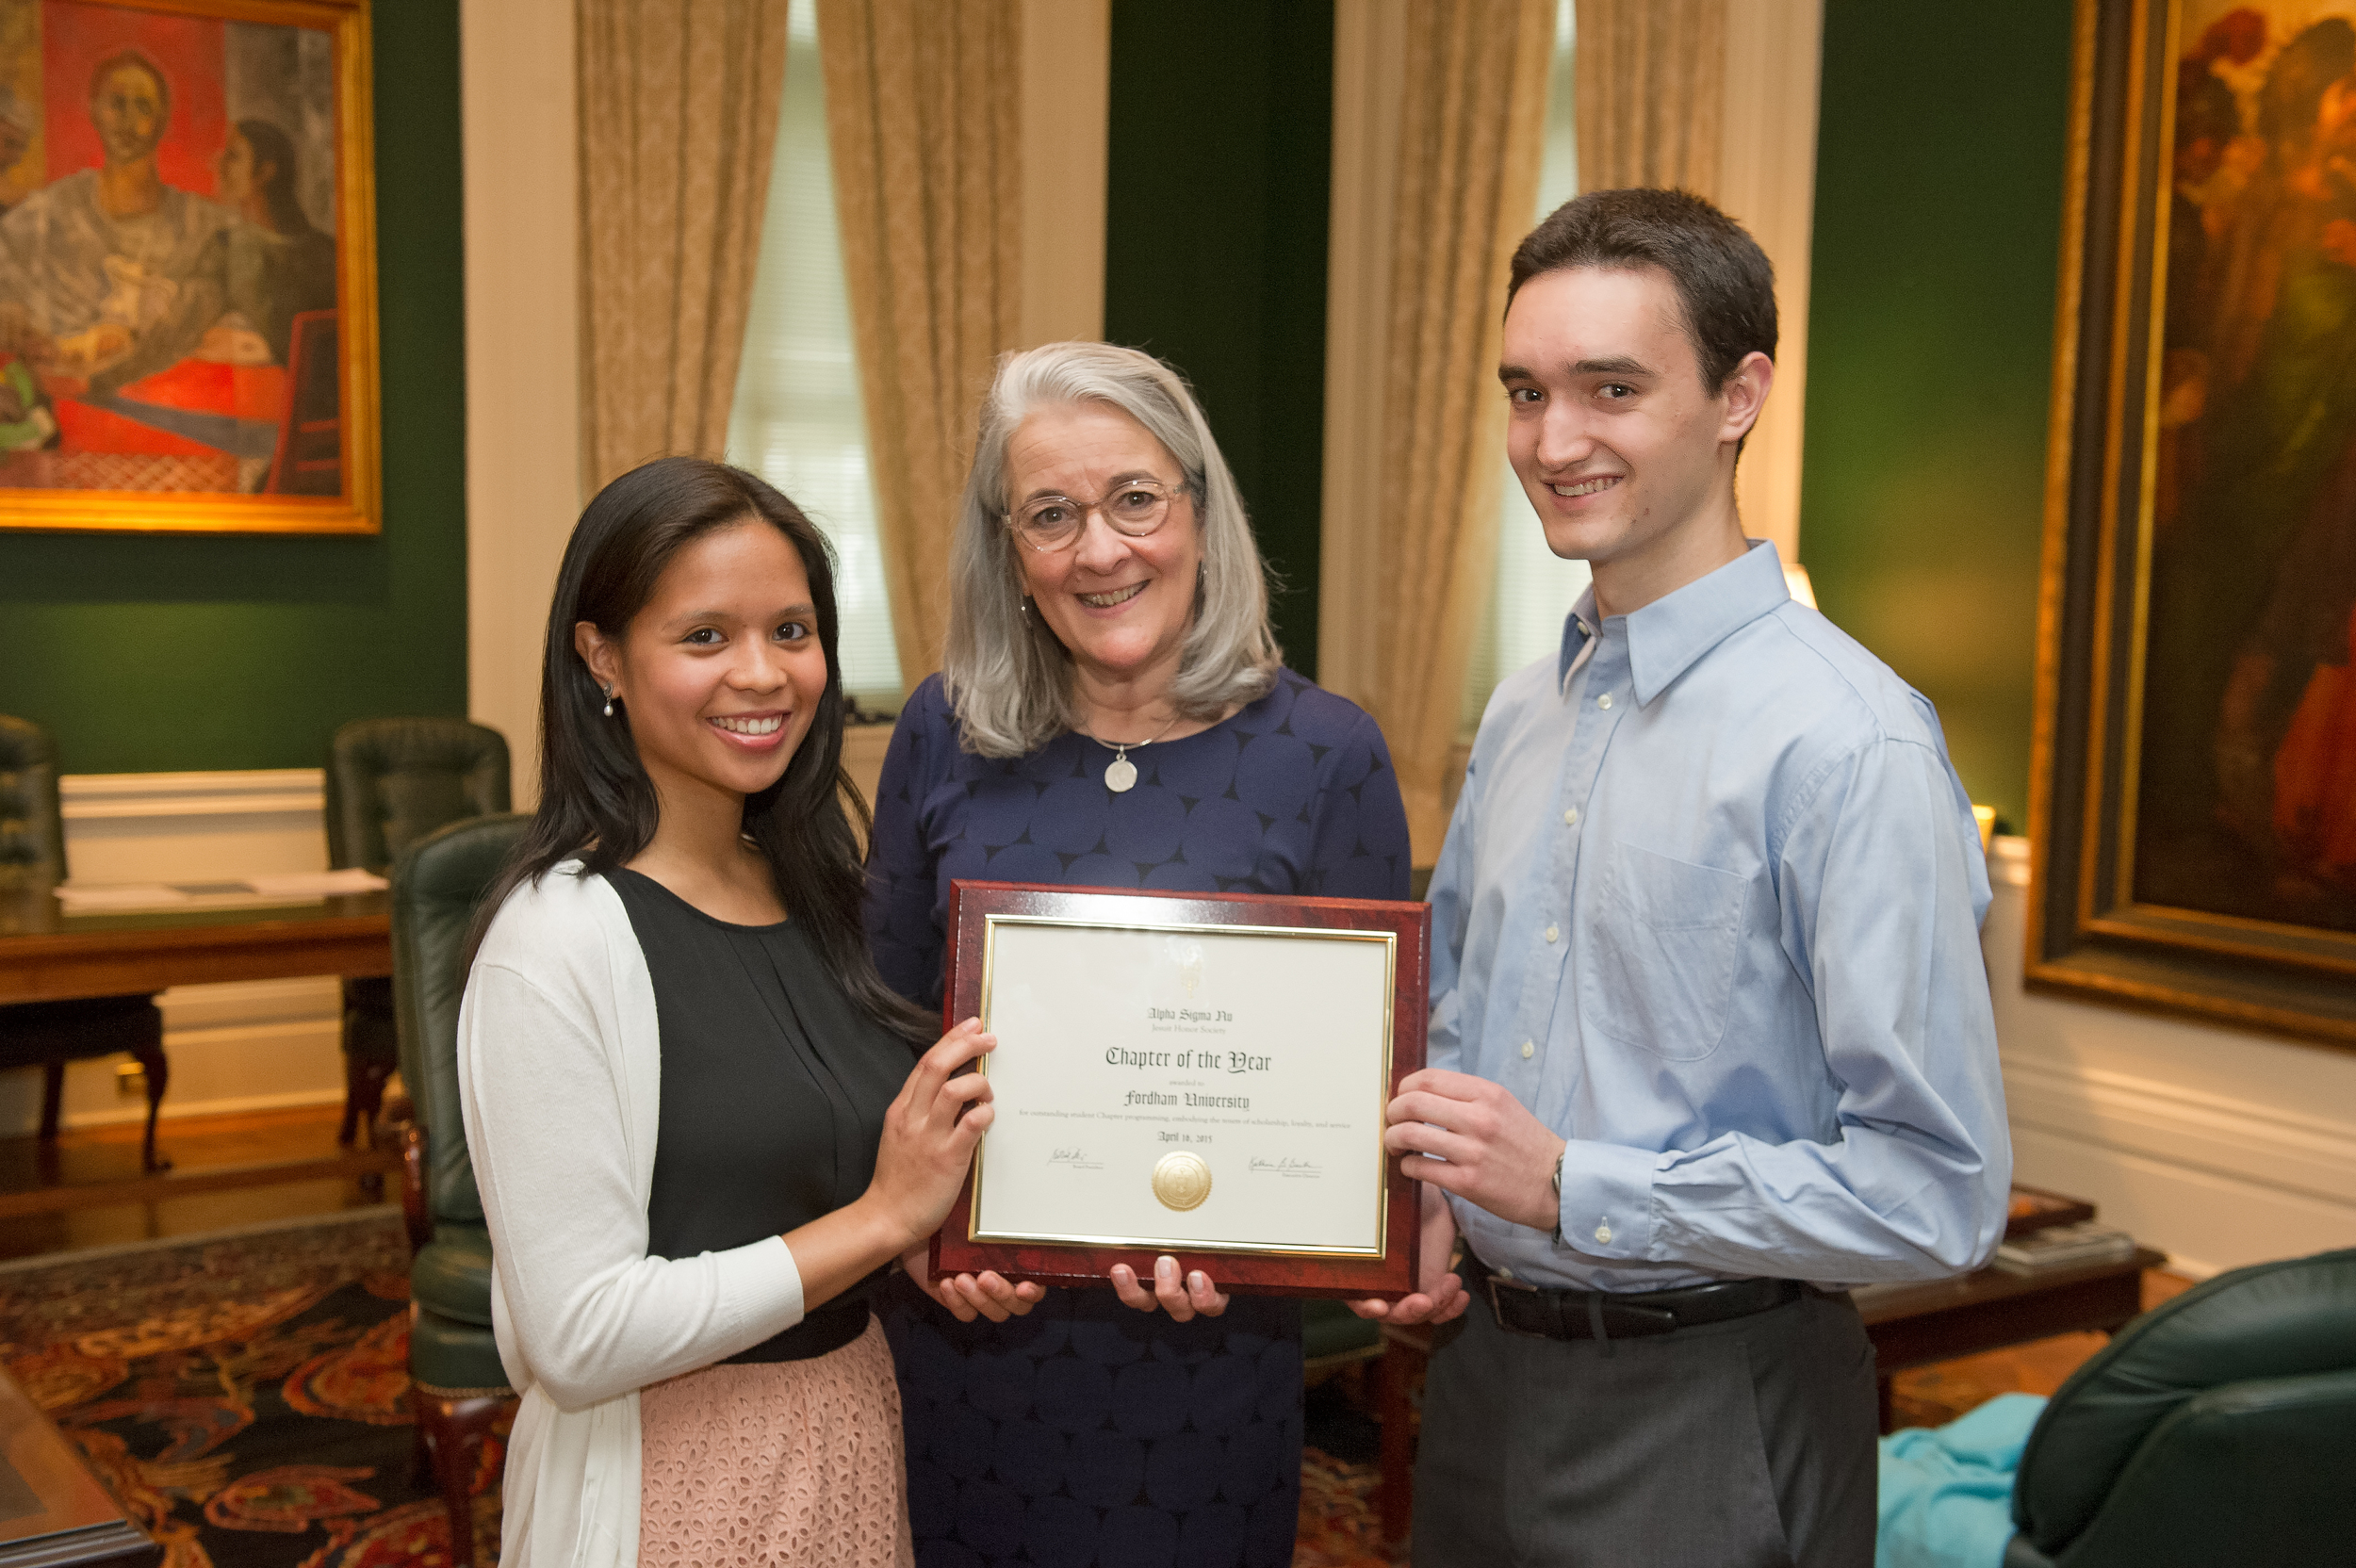 Above: Kate Gaertner, executive director of Alpha Sigma Nu, presents the ASN Chapter award to Rachel Mae Aguilar, the 2014-15 president of the Fordham ASN chapter, and Jeremy Fague, the chapter's incoming 2015-16 president.  Photo by Chris Taggart,Fordham University.